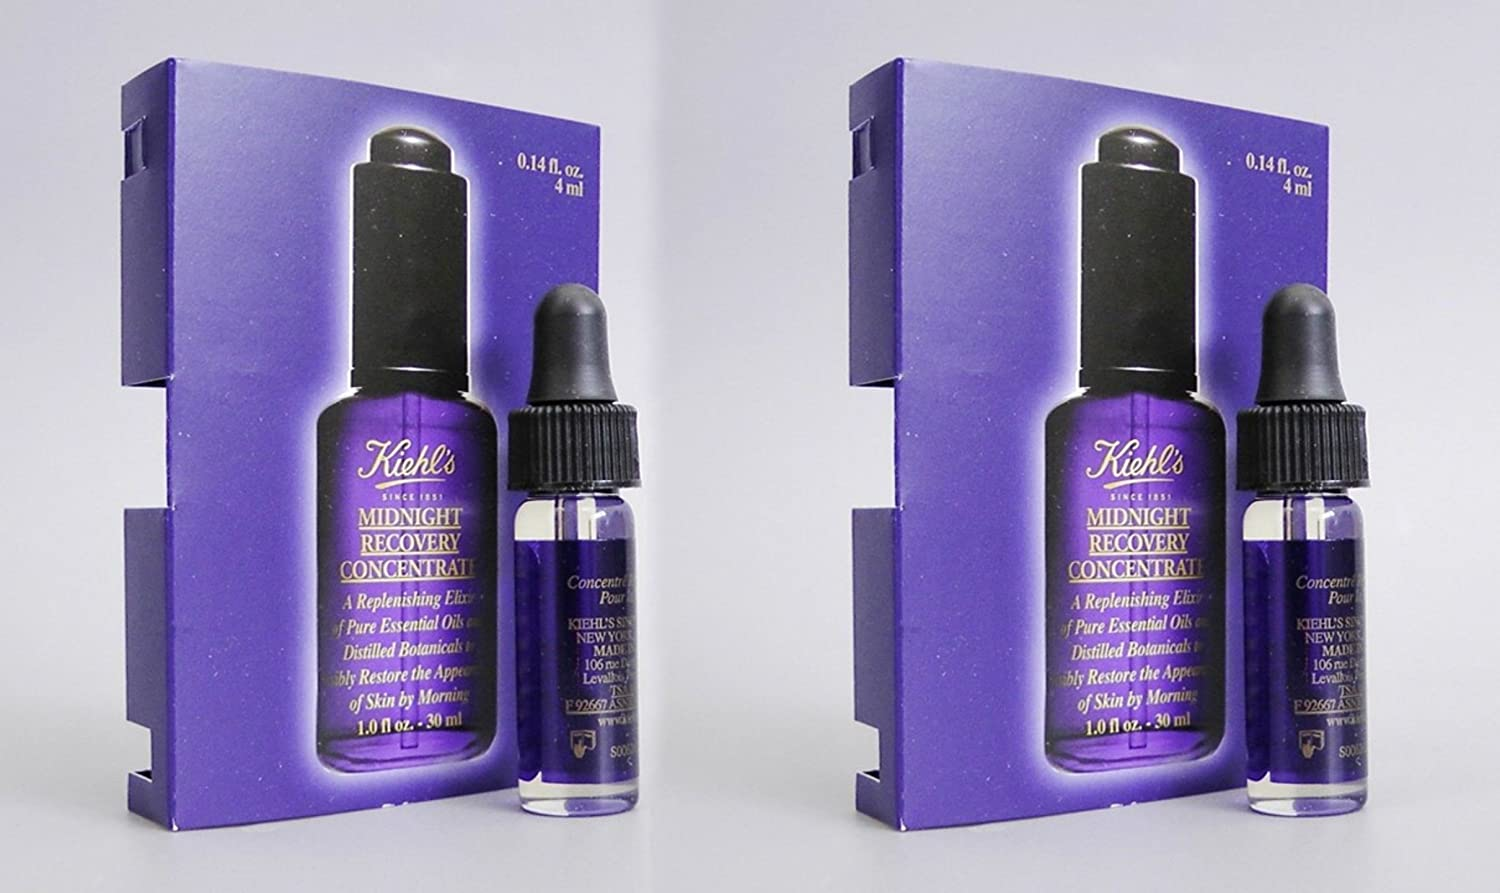 'Midnight Recovery' Concentrate Promo Size (Pack of 2, 8ml total)